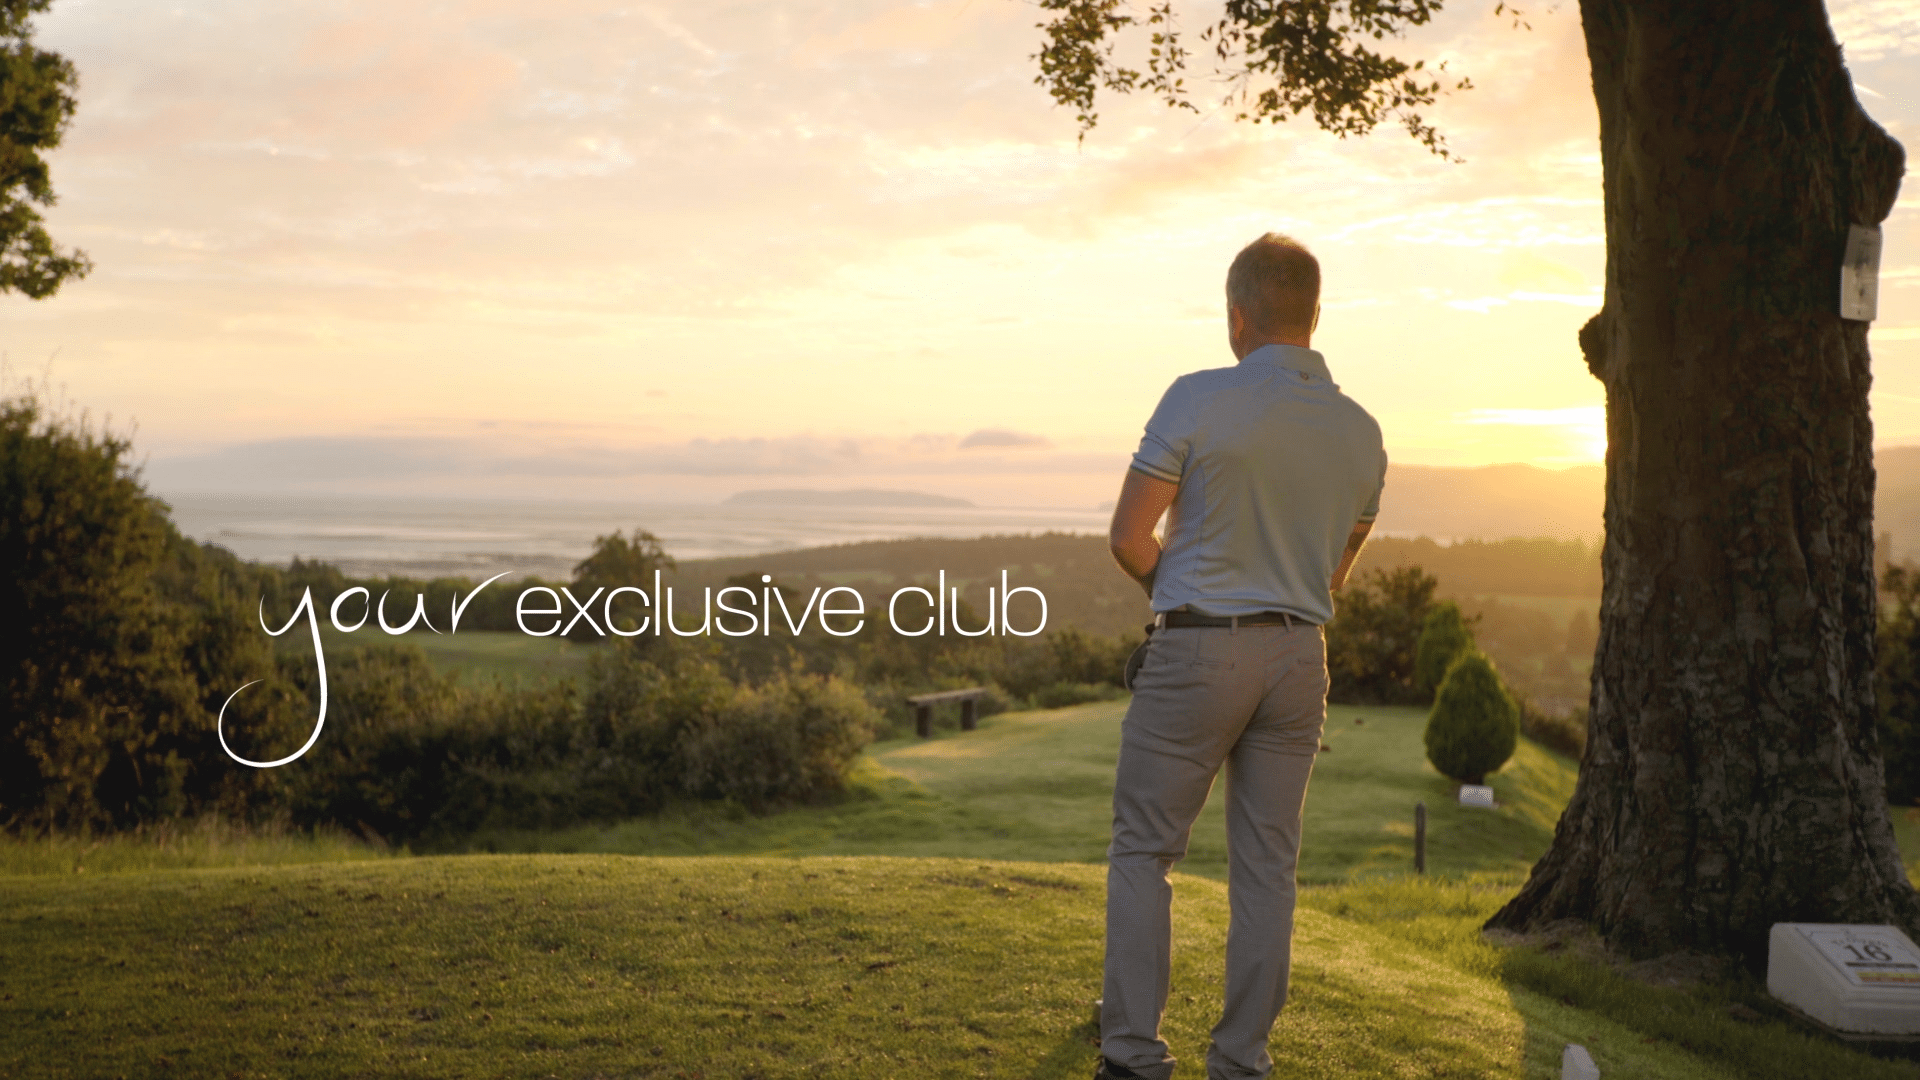 Premium Luxury Brand Film - golfer overlooking course